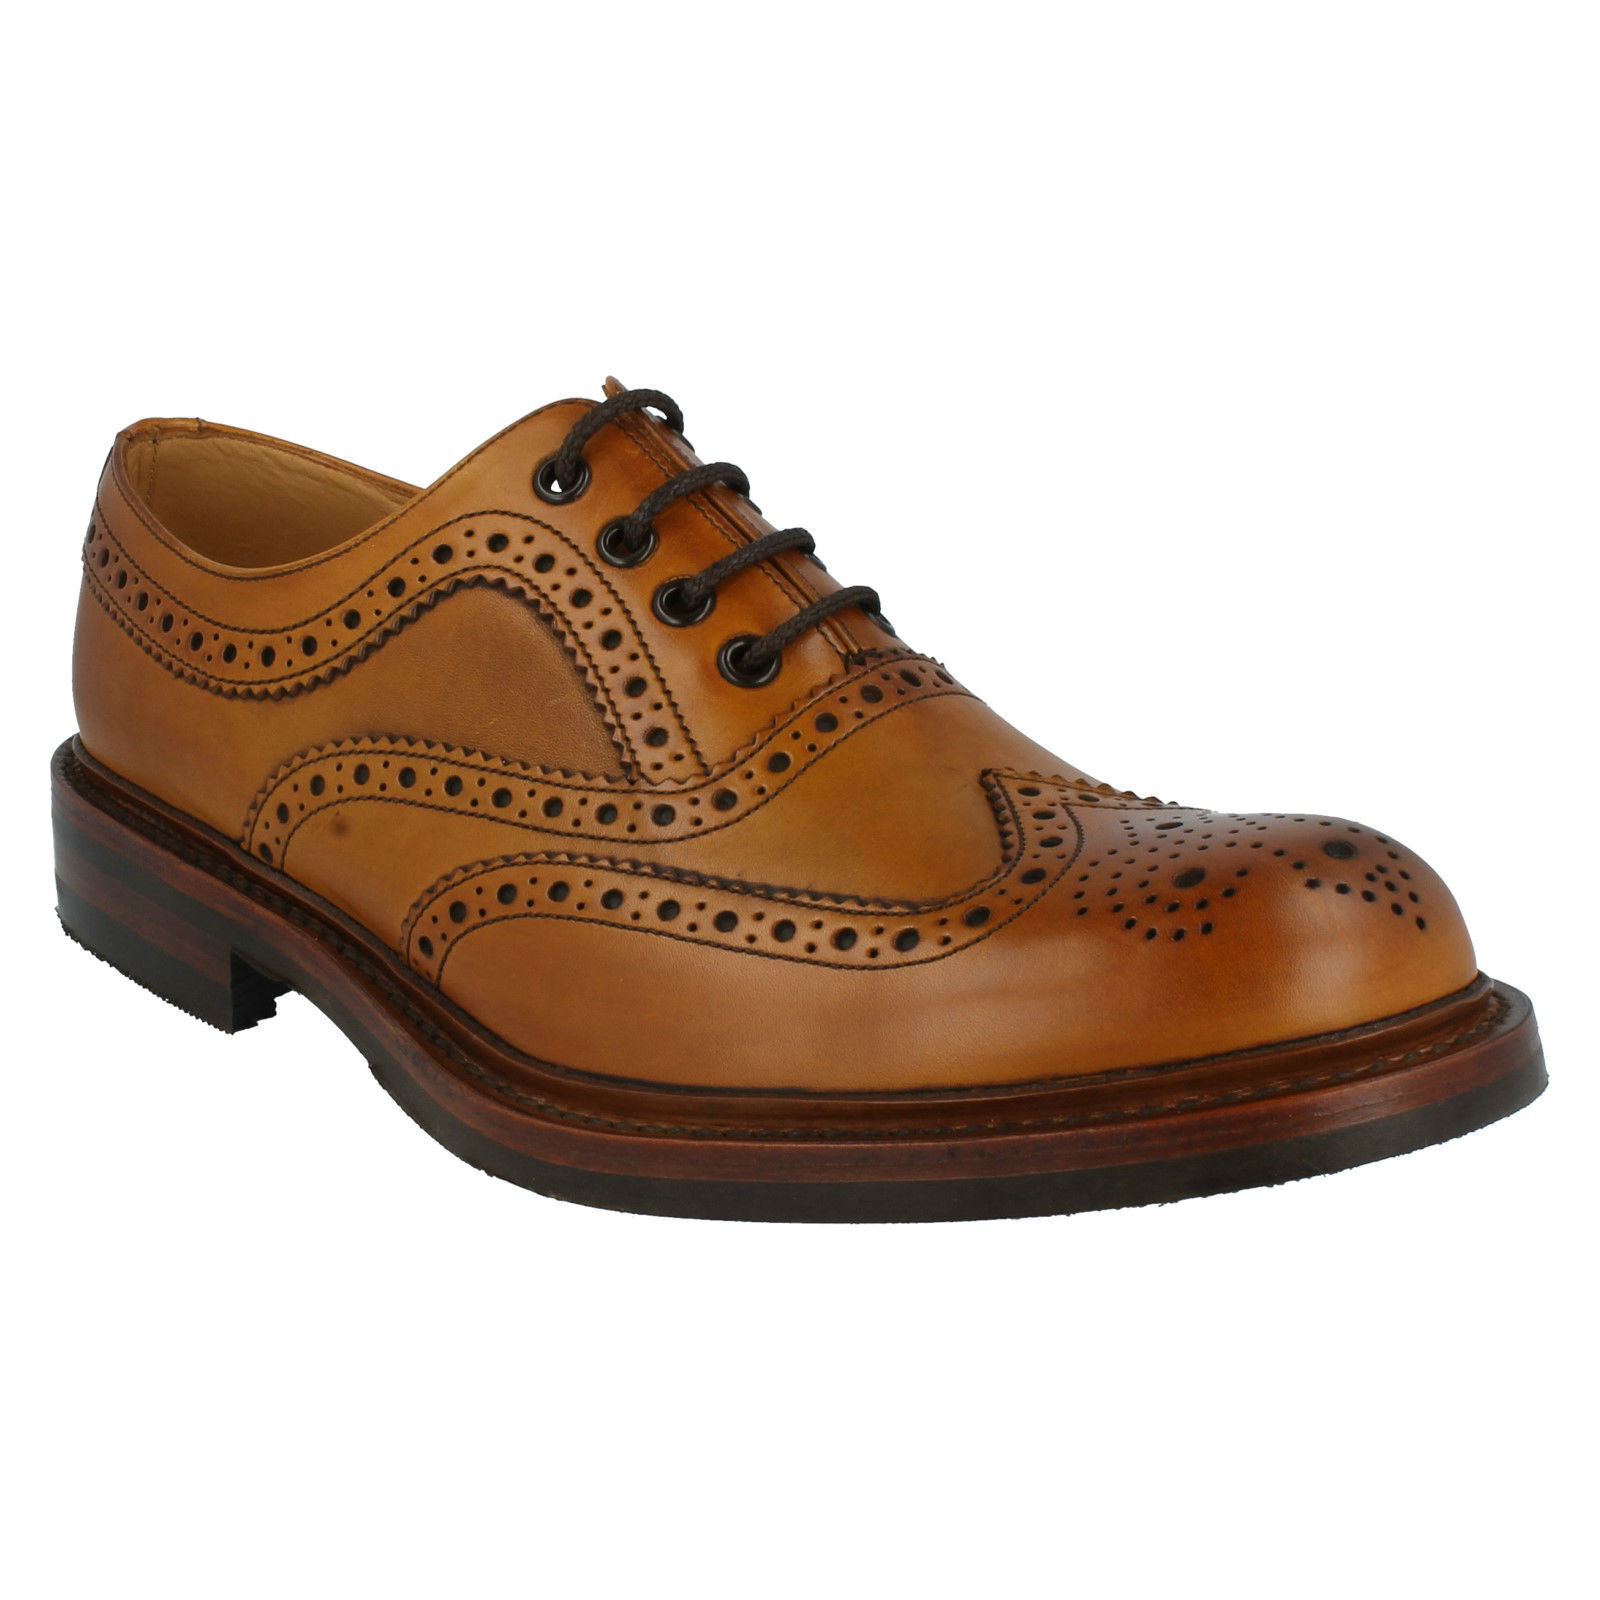 Edward Uomo LOAKE marrone vitello brunito in pelle di vitello marrone con lacci calzata G b36f2d